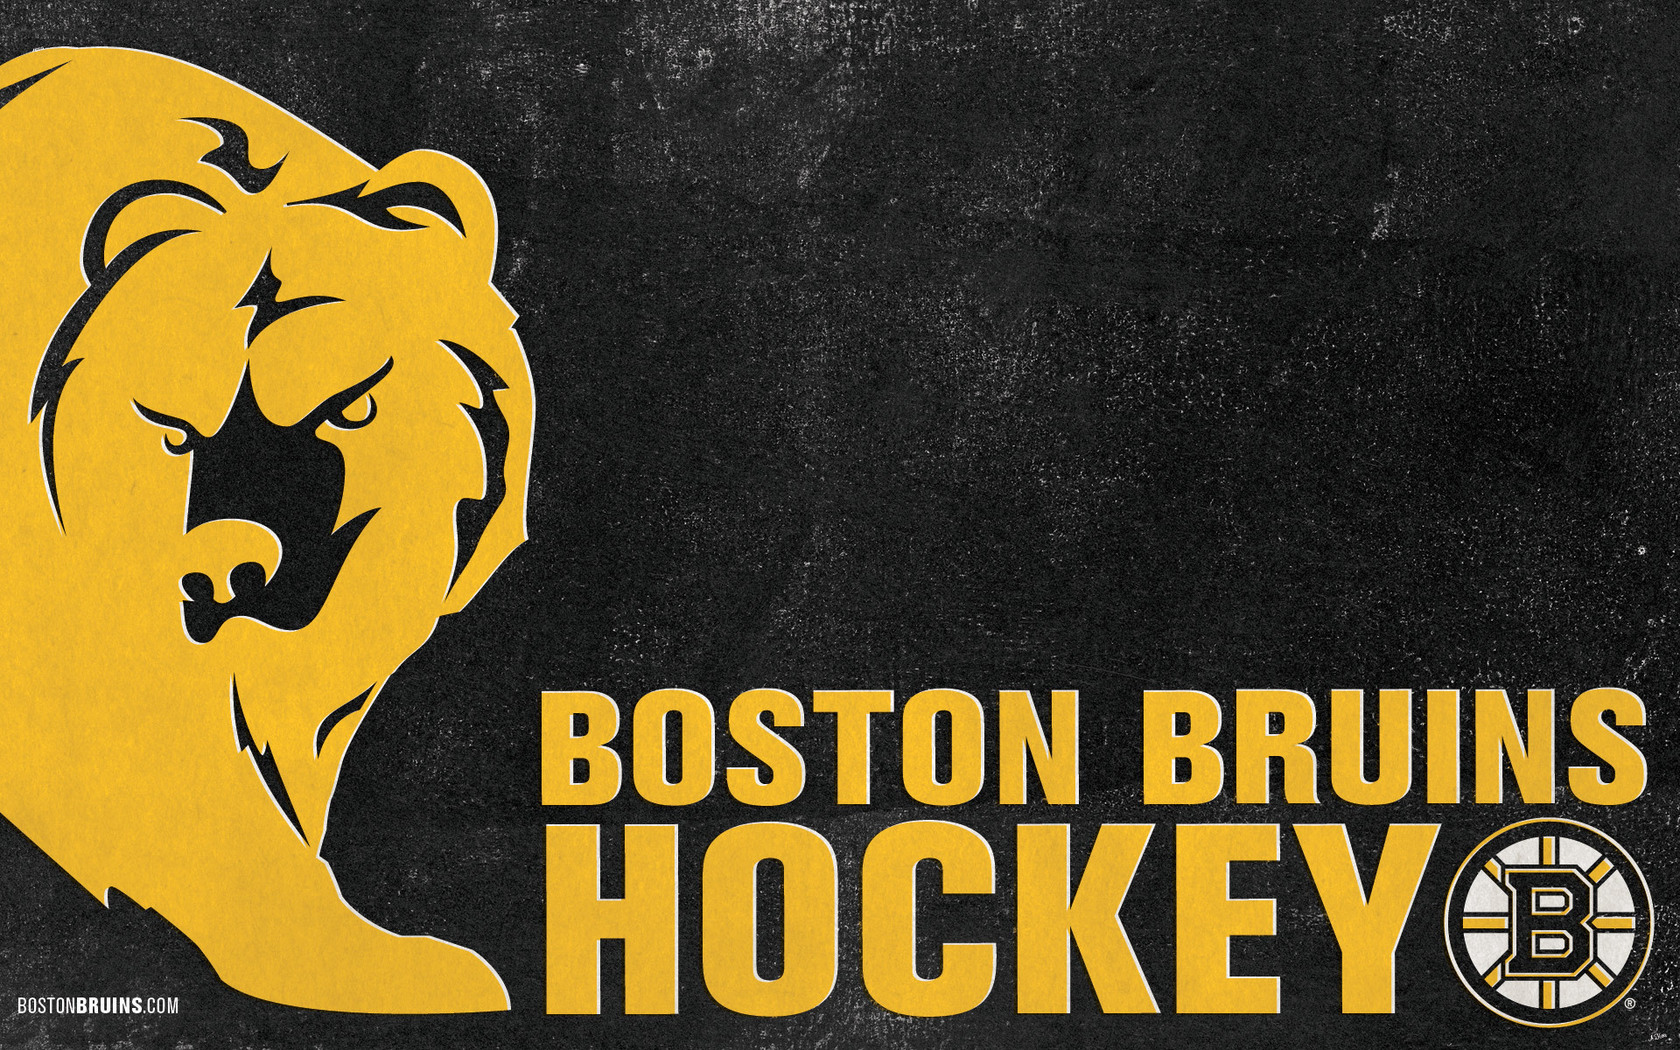 BRUINS Logo - Boston BRUINS 1920x1200 1680x1050 1440x900 1280x800